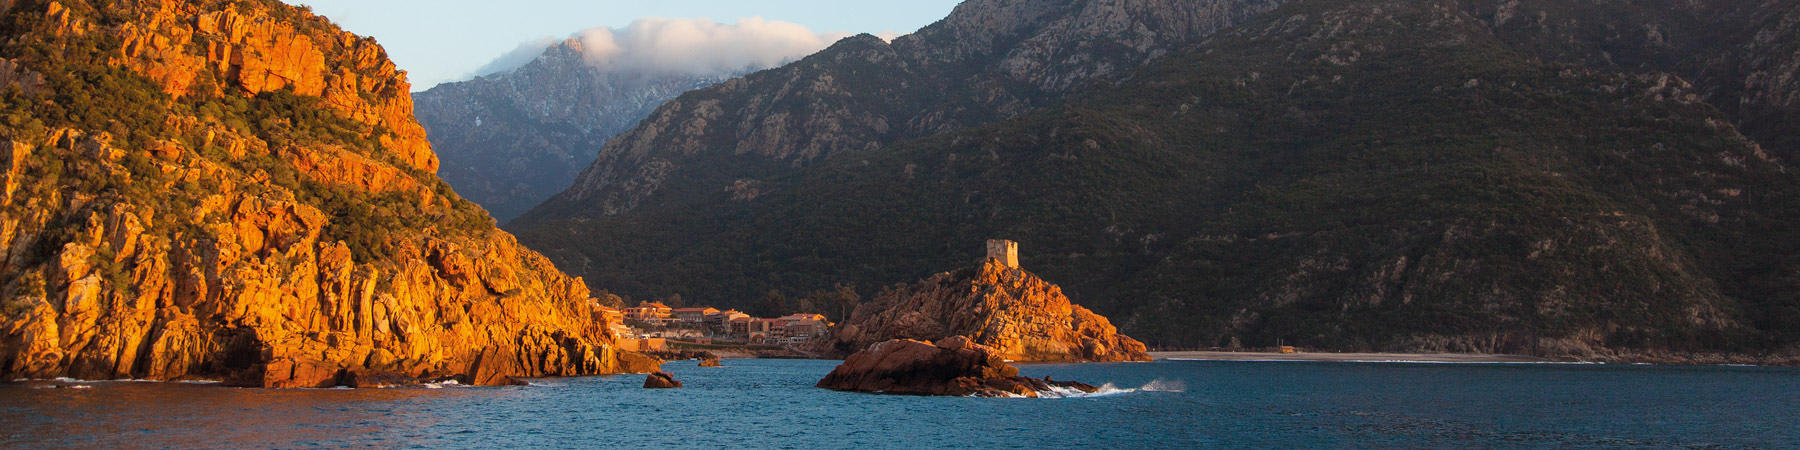 From Ajaccio to the Revellata Cape - Photo Pêcheur d'Images